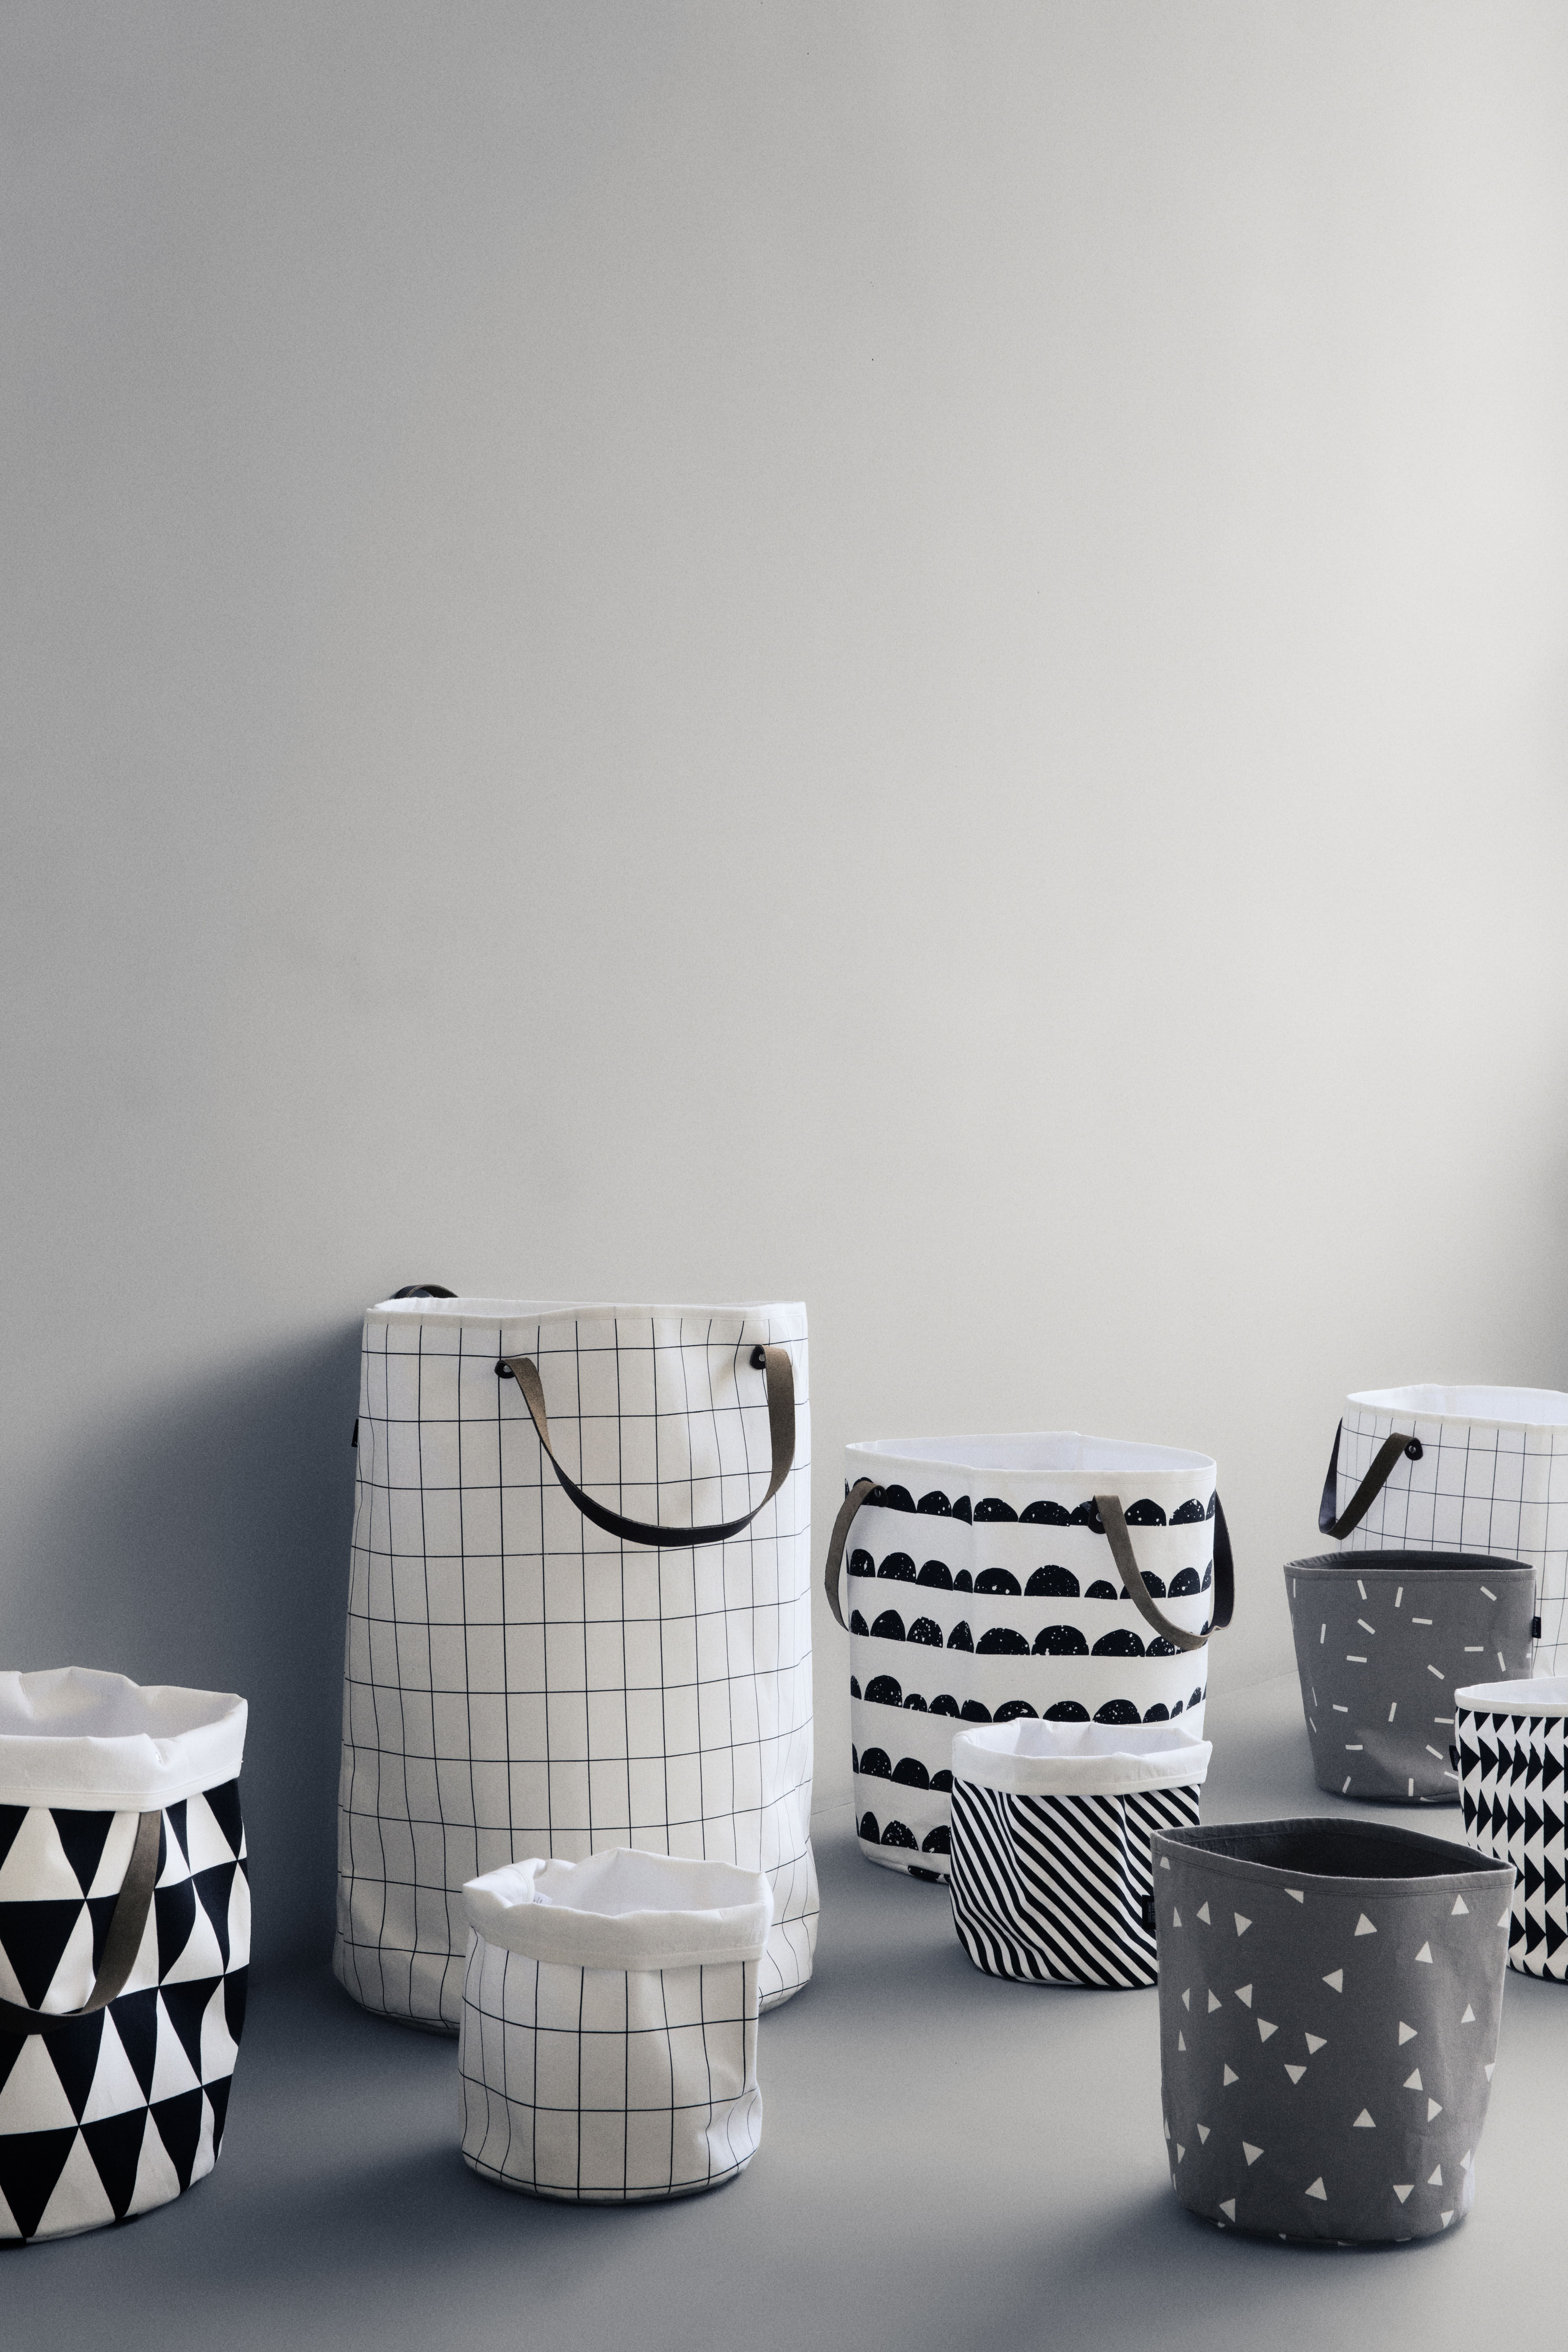 arrow basket small 22 x h 25 cm arrow black white by ferm living. Black Bedroom Furniture Sets. Home Design Ideas